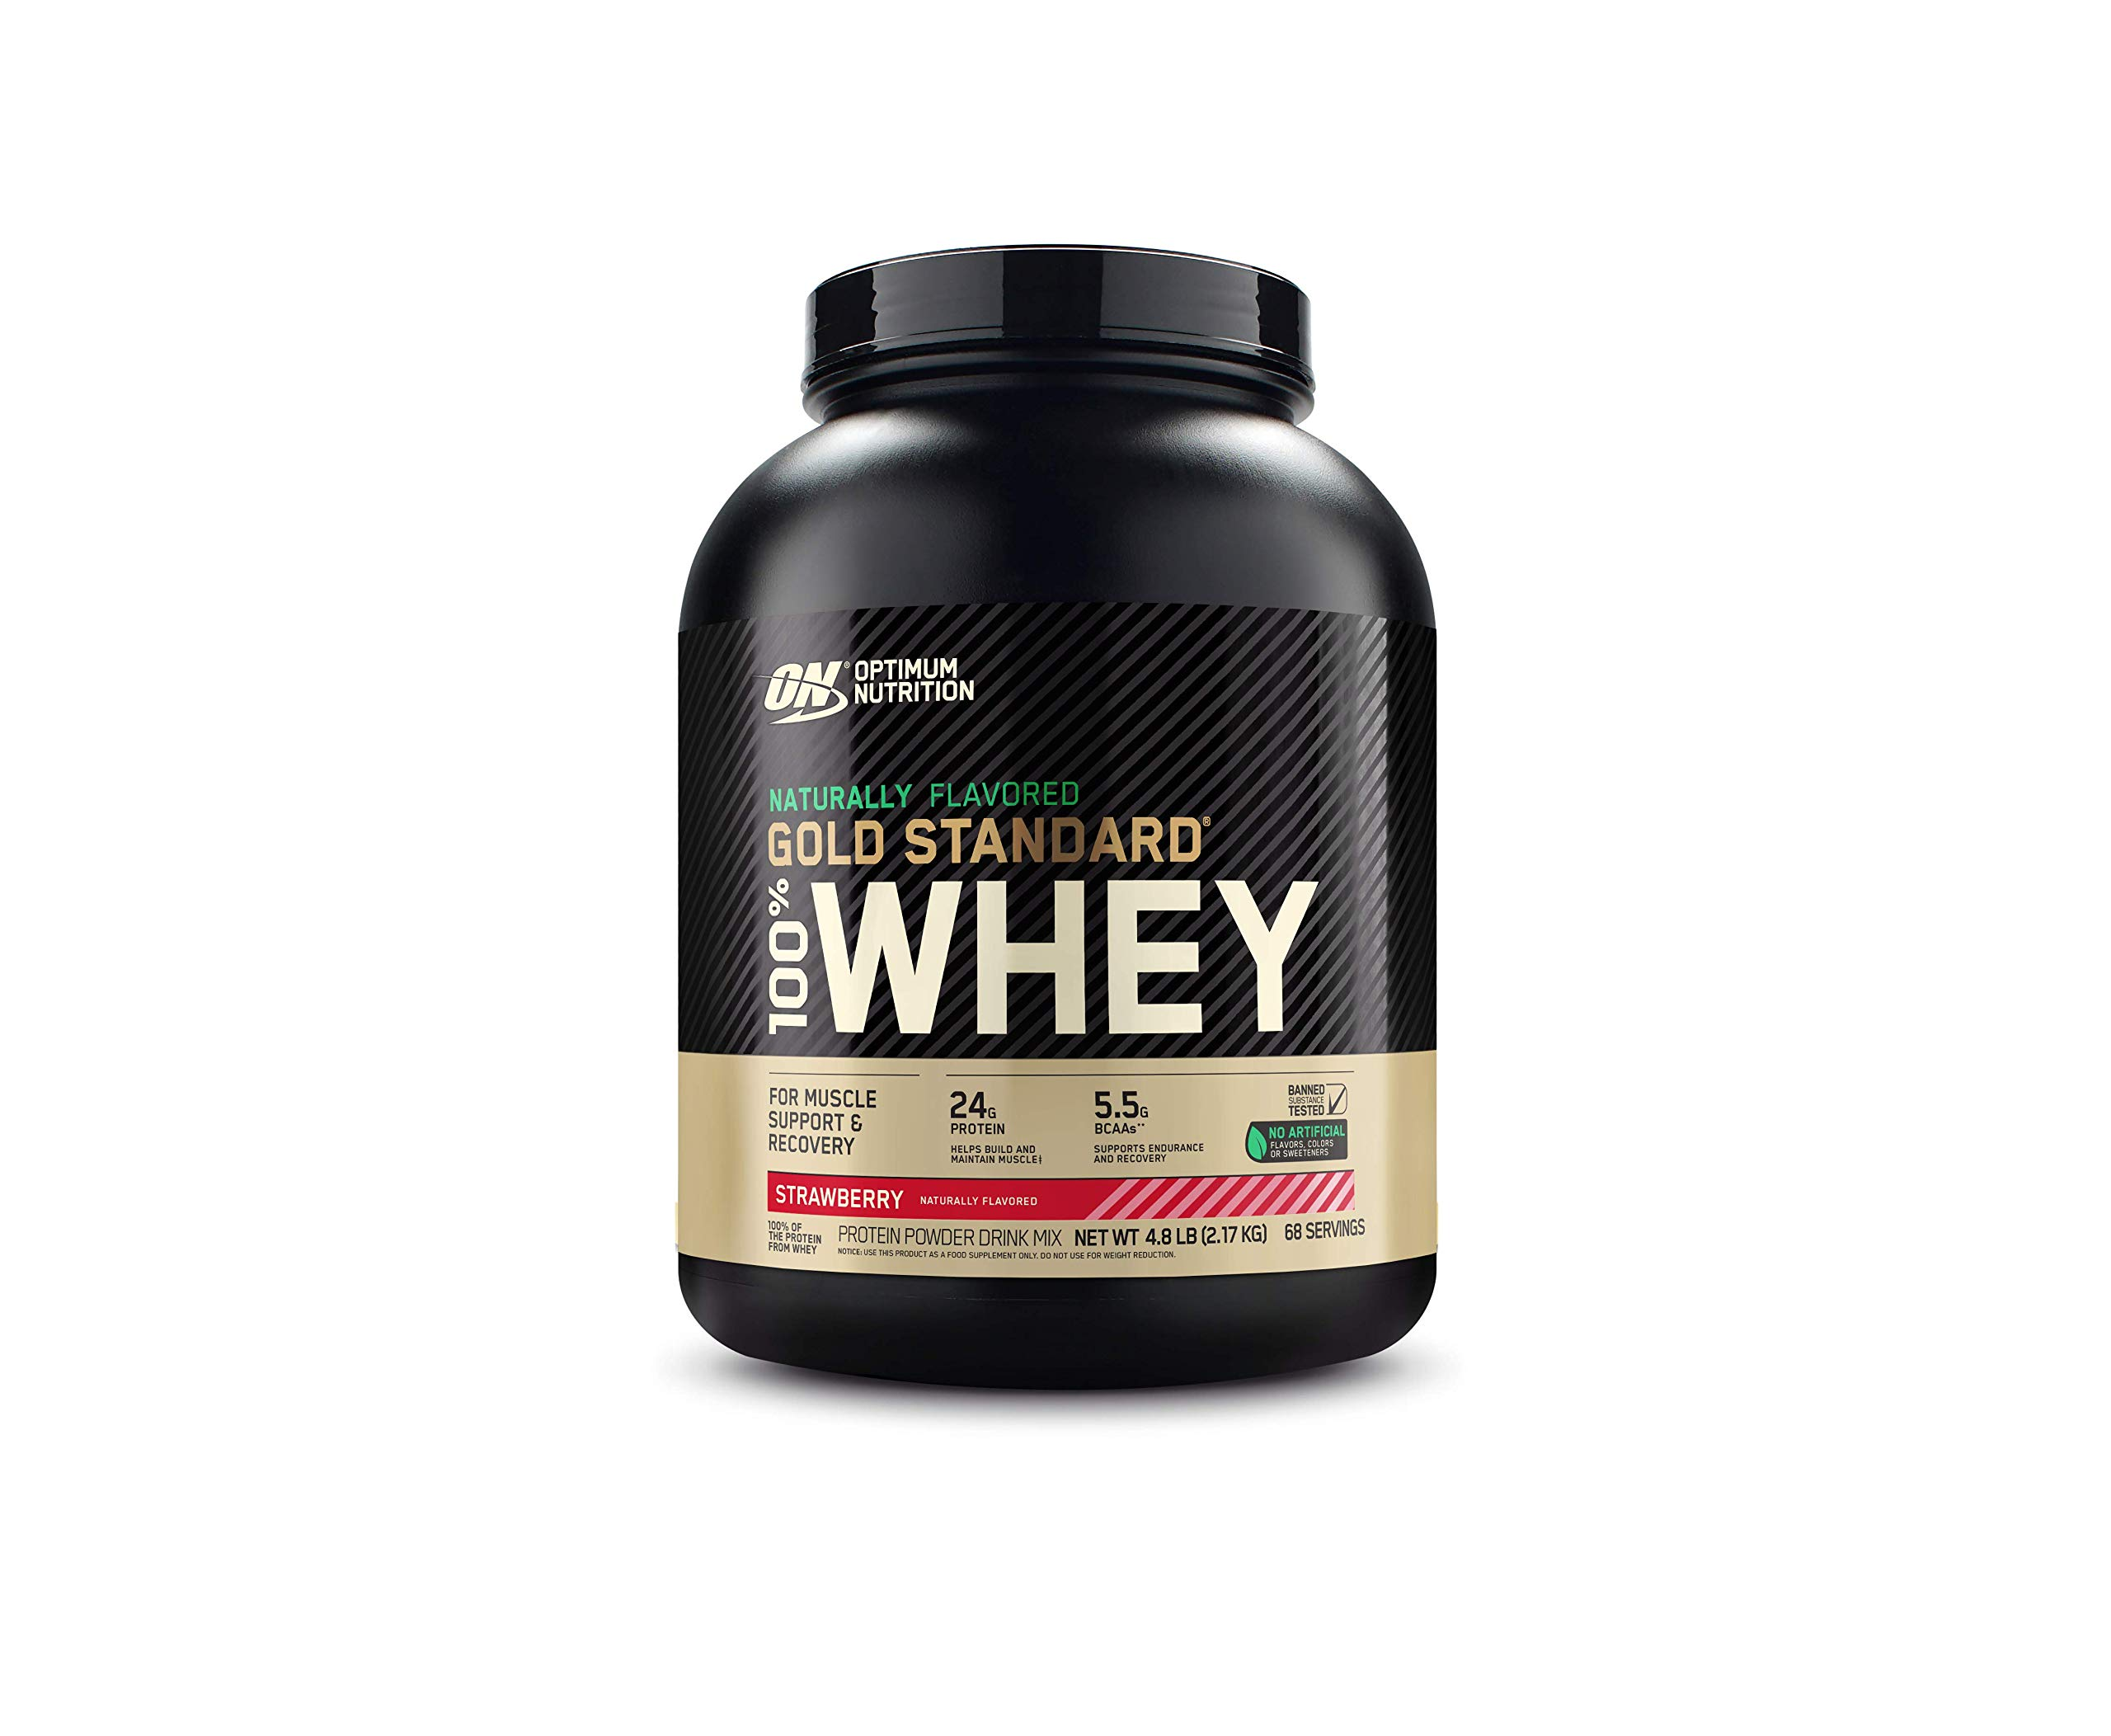 Optimum Nutrition Gold Standard 100% Whey Protein Powder, Naturally Flavored Strawberry, 4.8 Pound (Packaging May Vary)